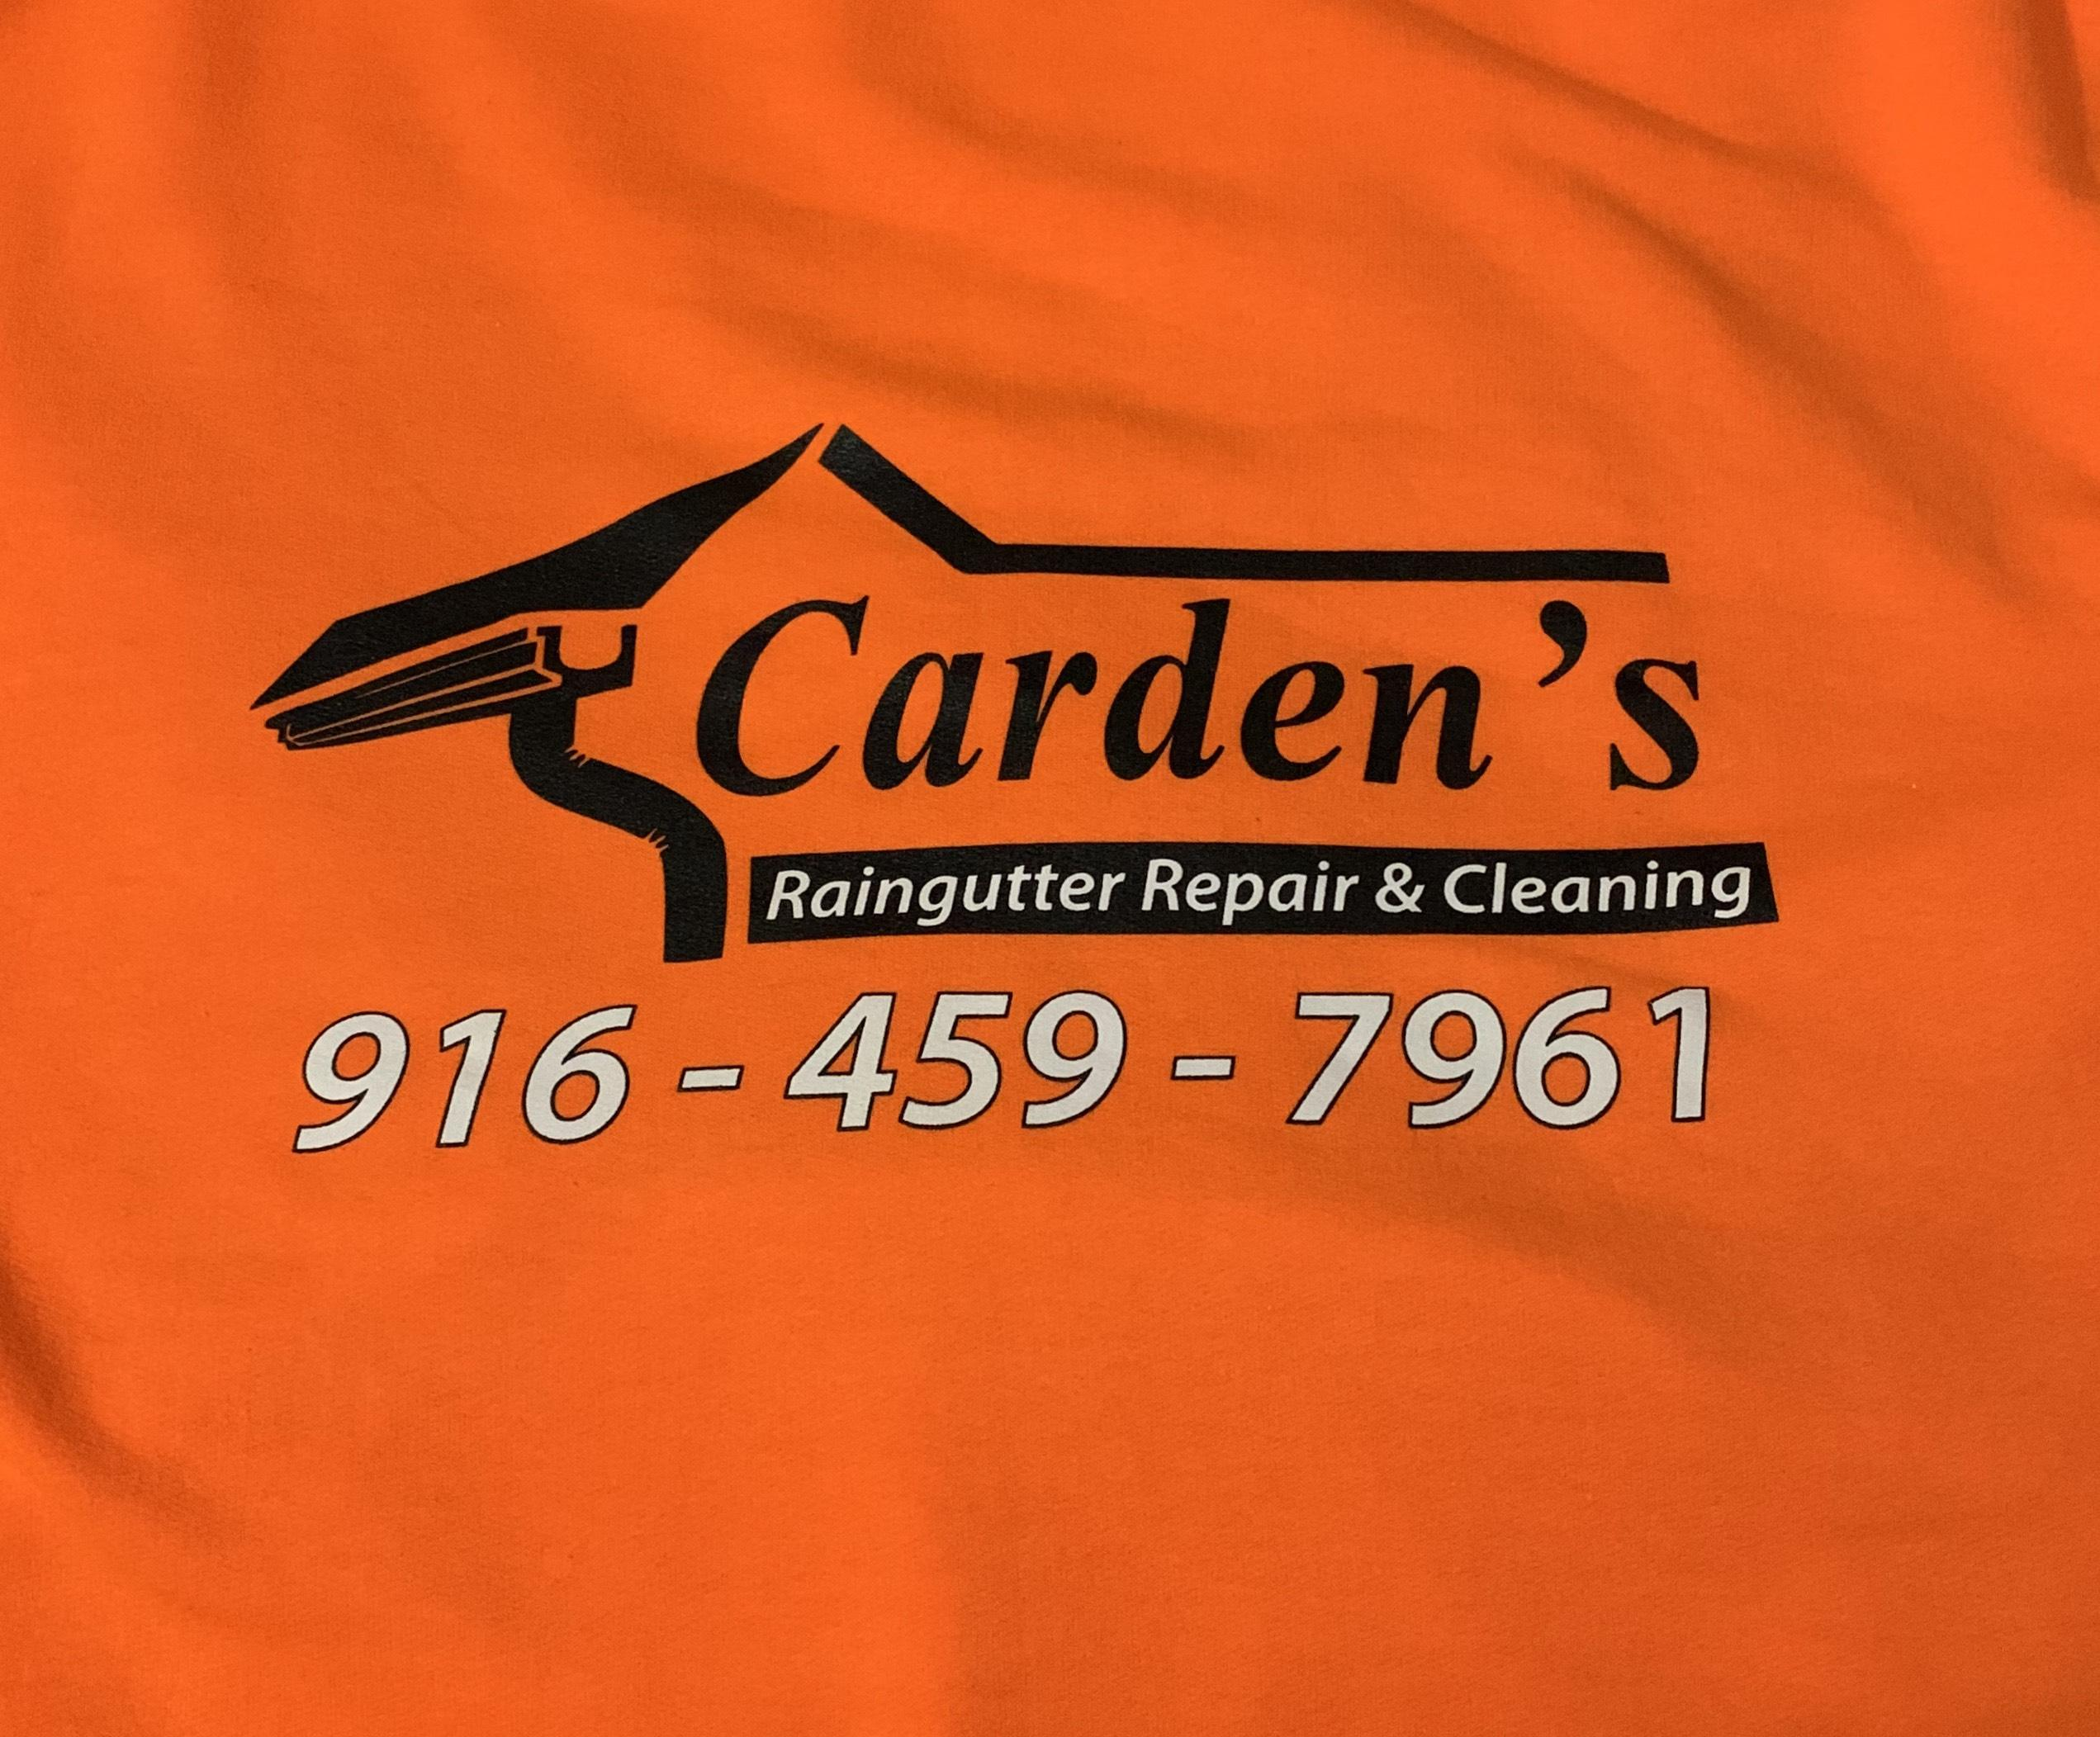 Carden's Raingutter Repair and Cleaning